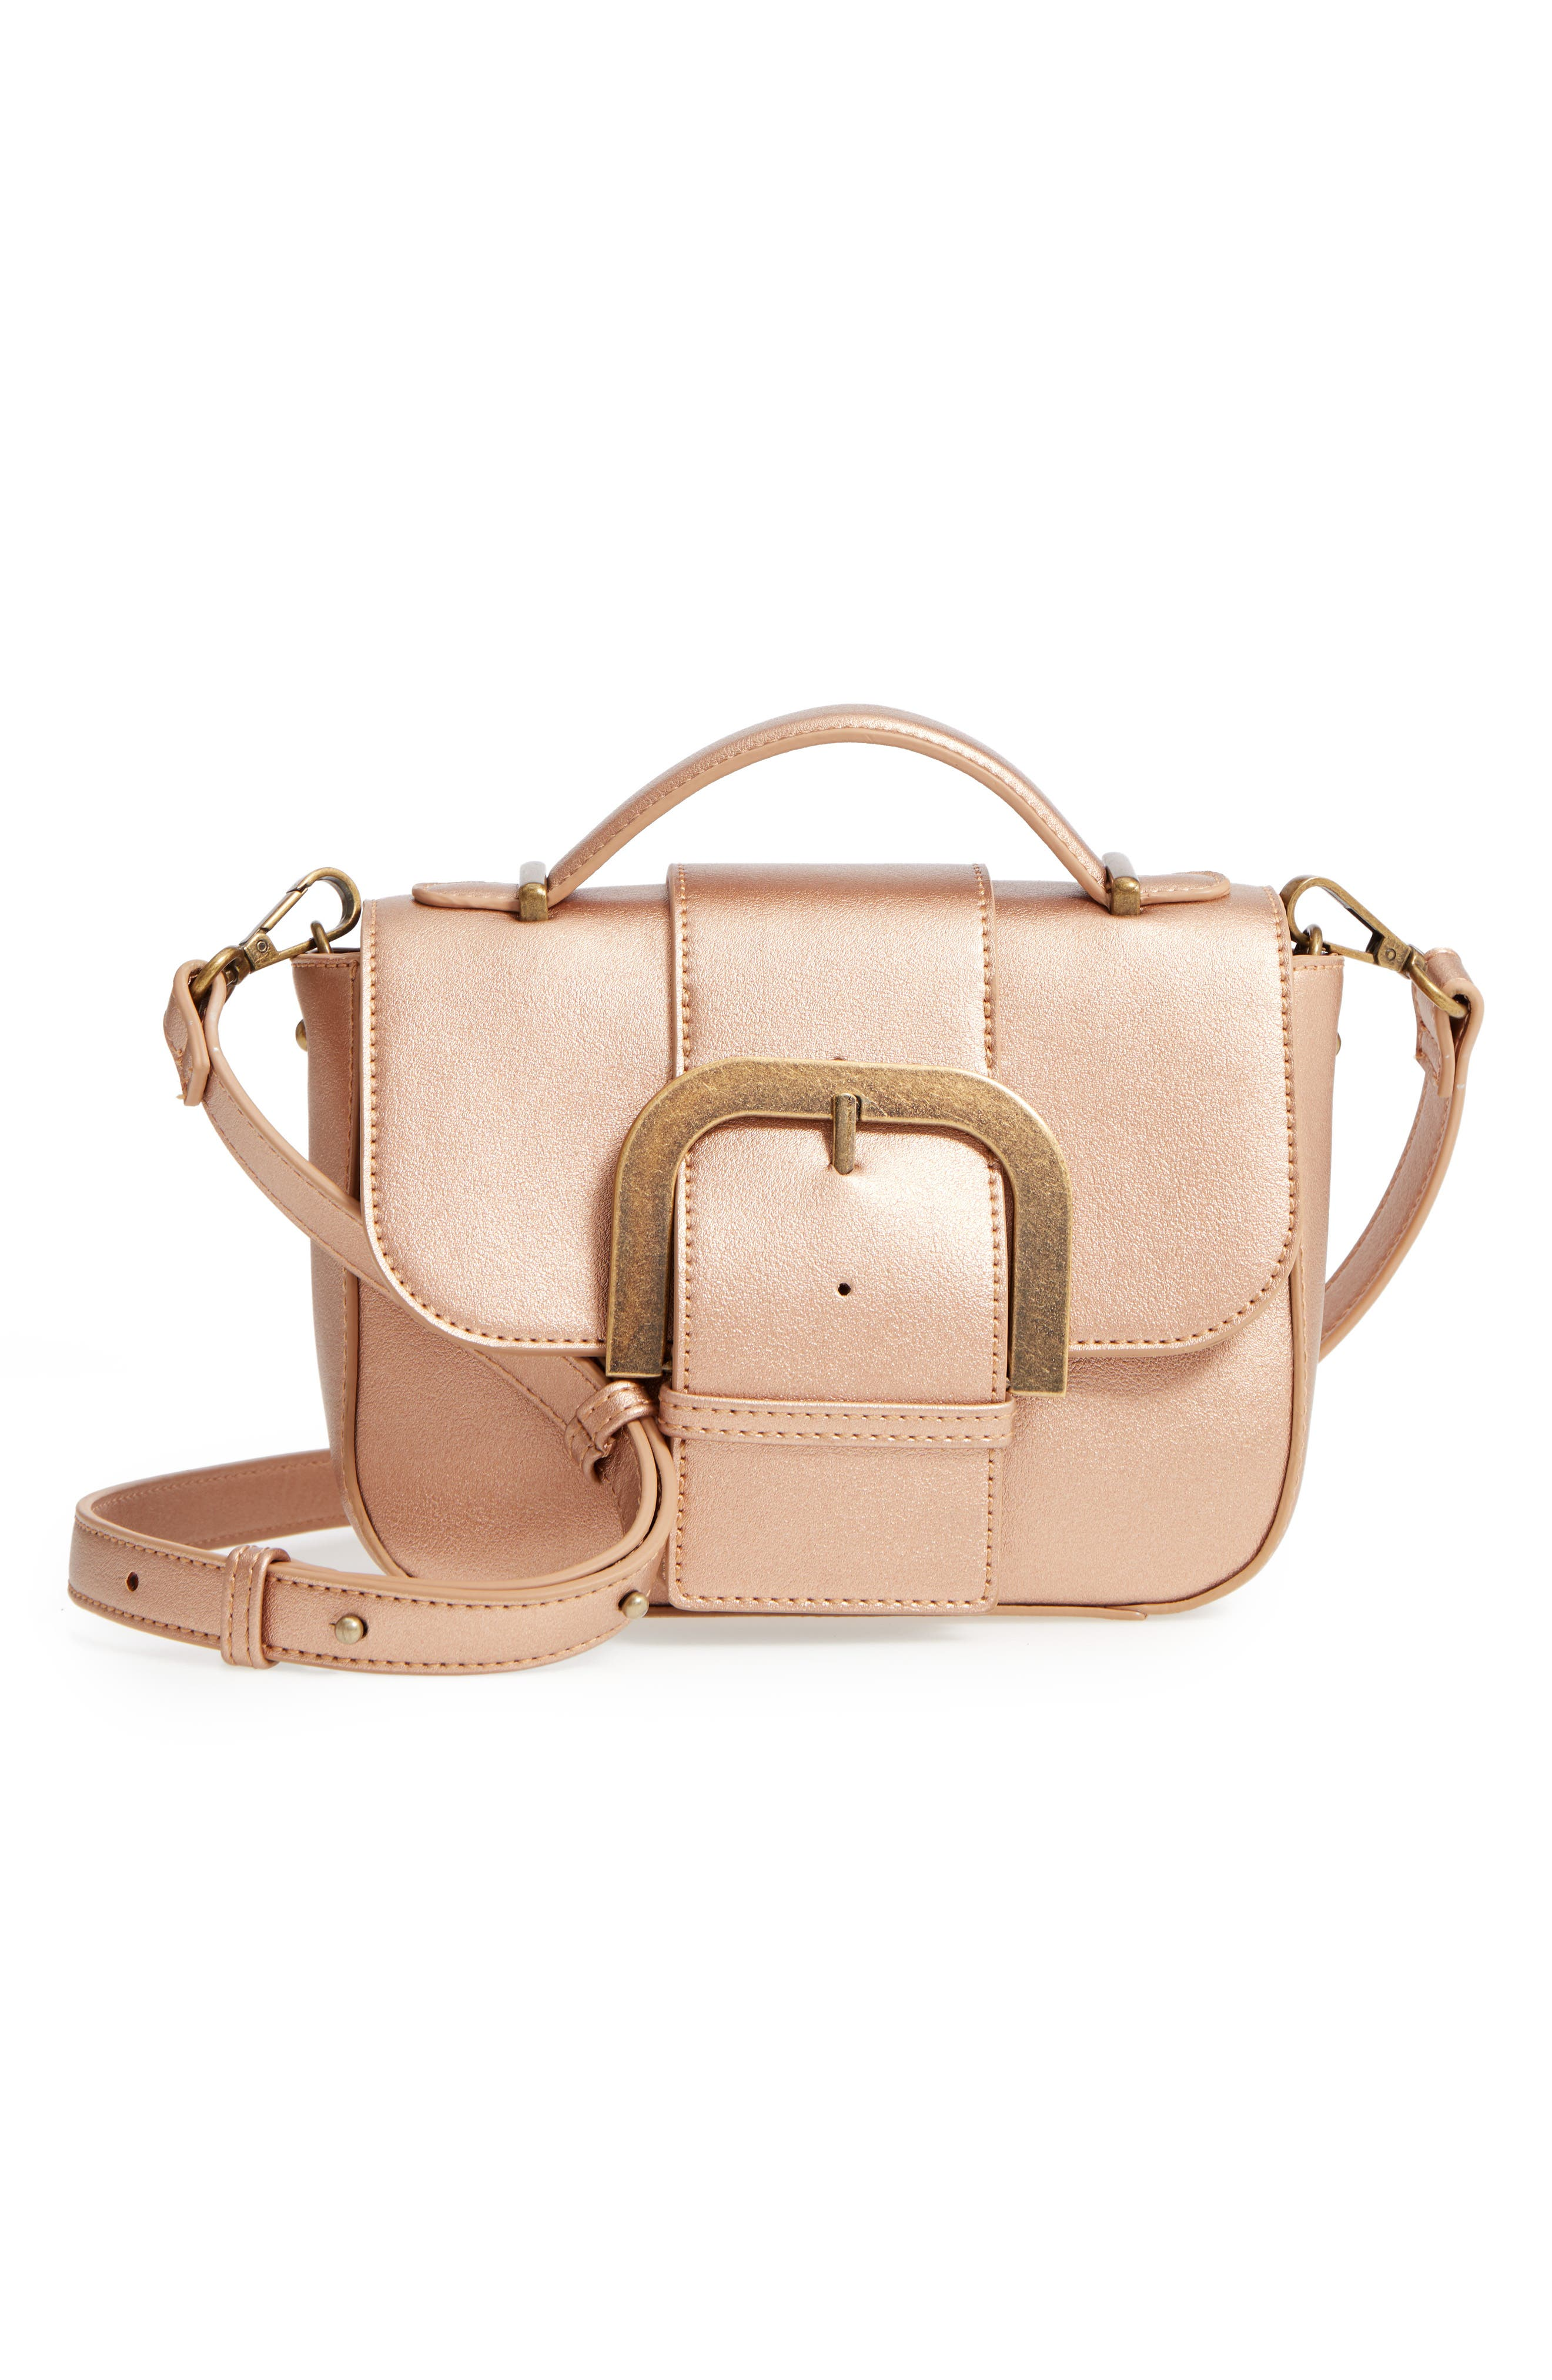 MALIBU SKYE Oversize Buckle Top Handle Bag, Main, color, ROSE GOLD